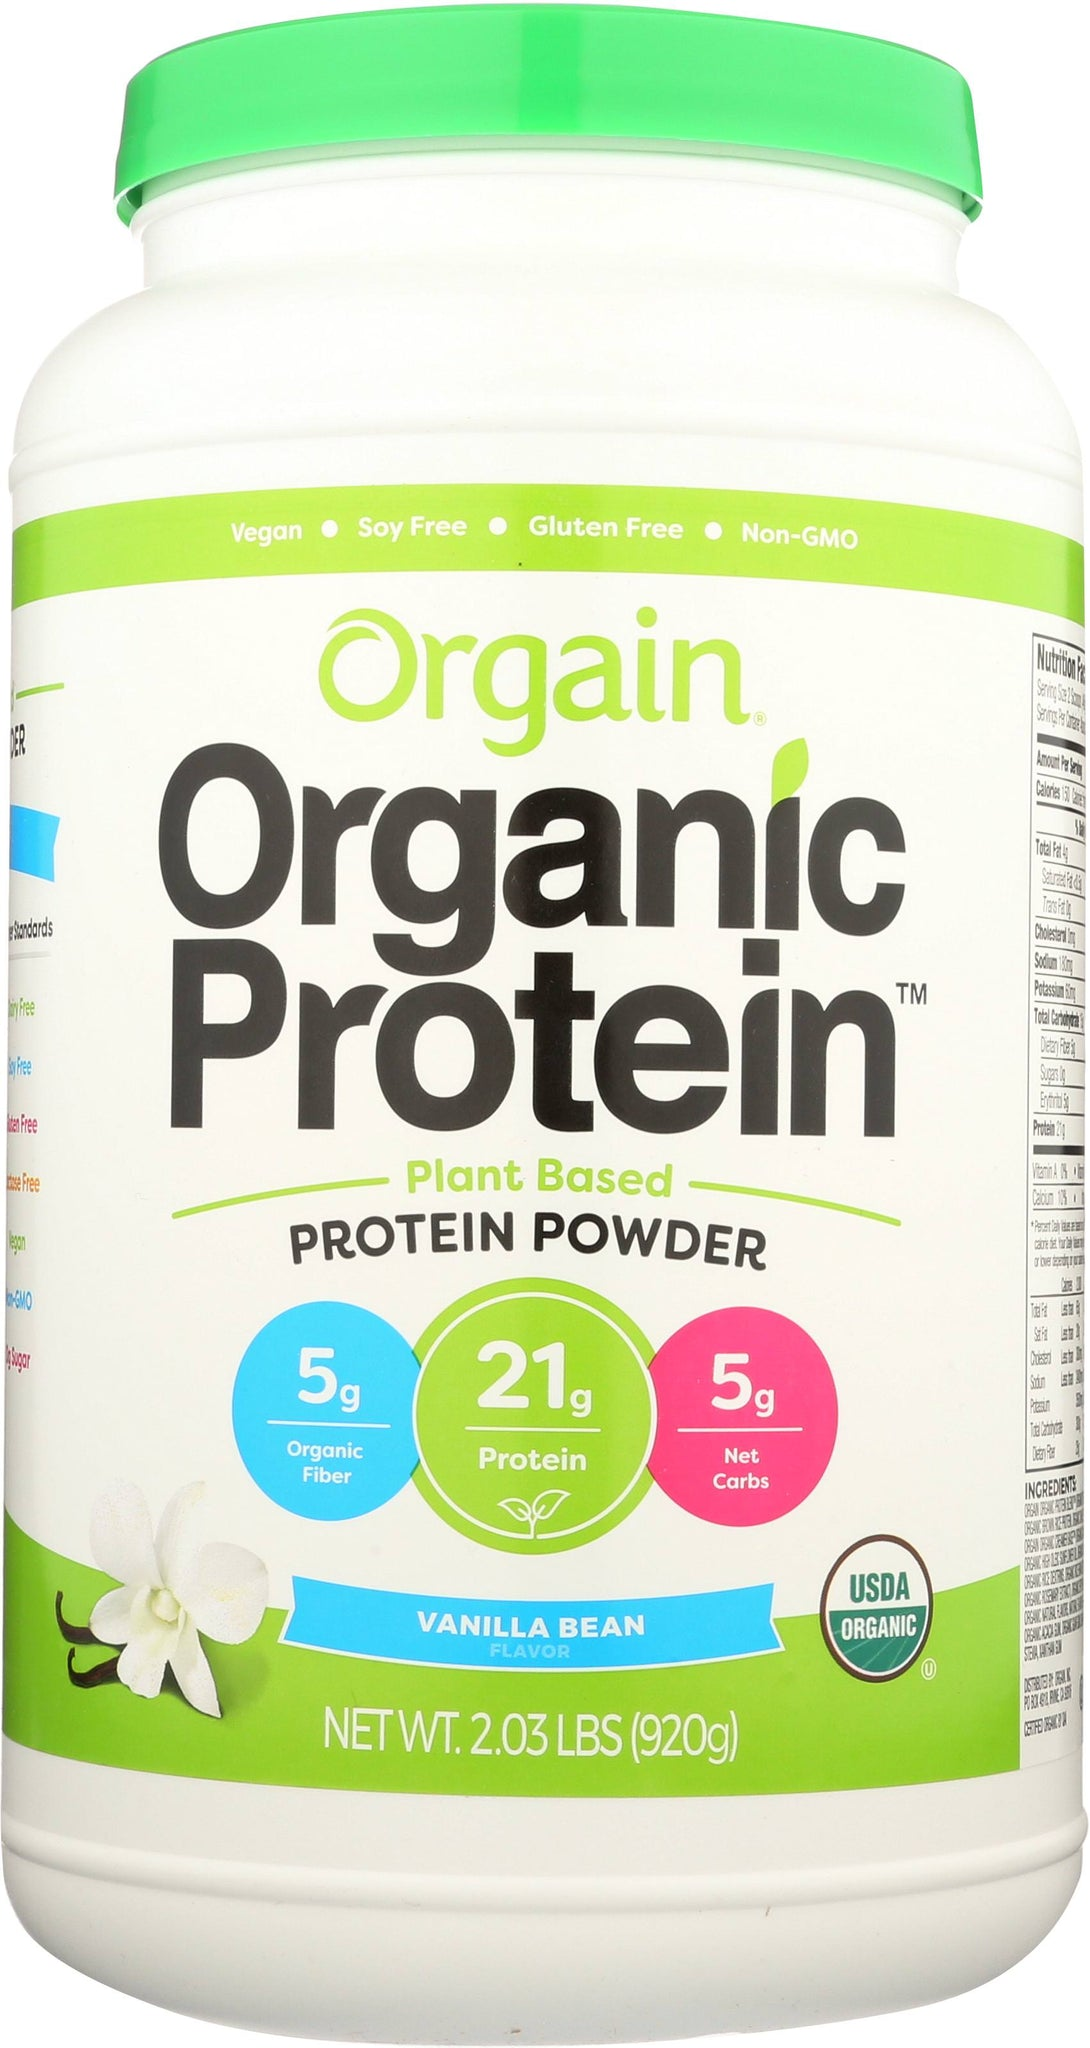 Orgain Sweet Vanilla Bean Organic Protein Powder, 2.05 lb (Pack of 1)